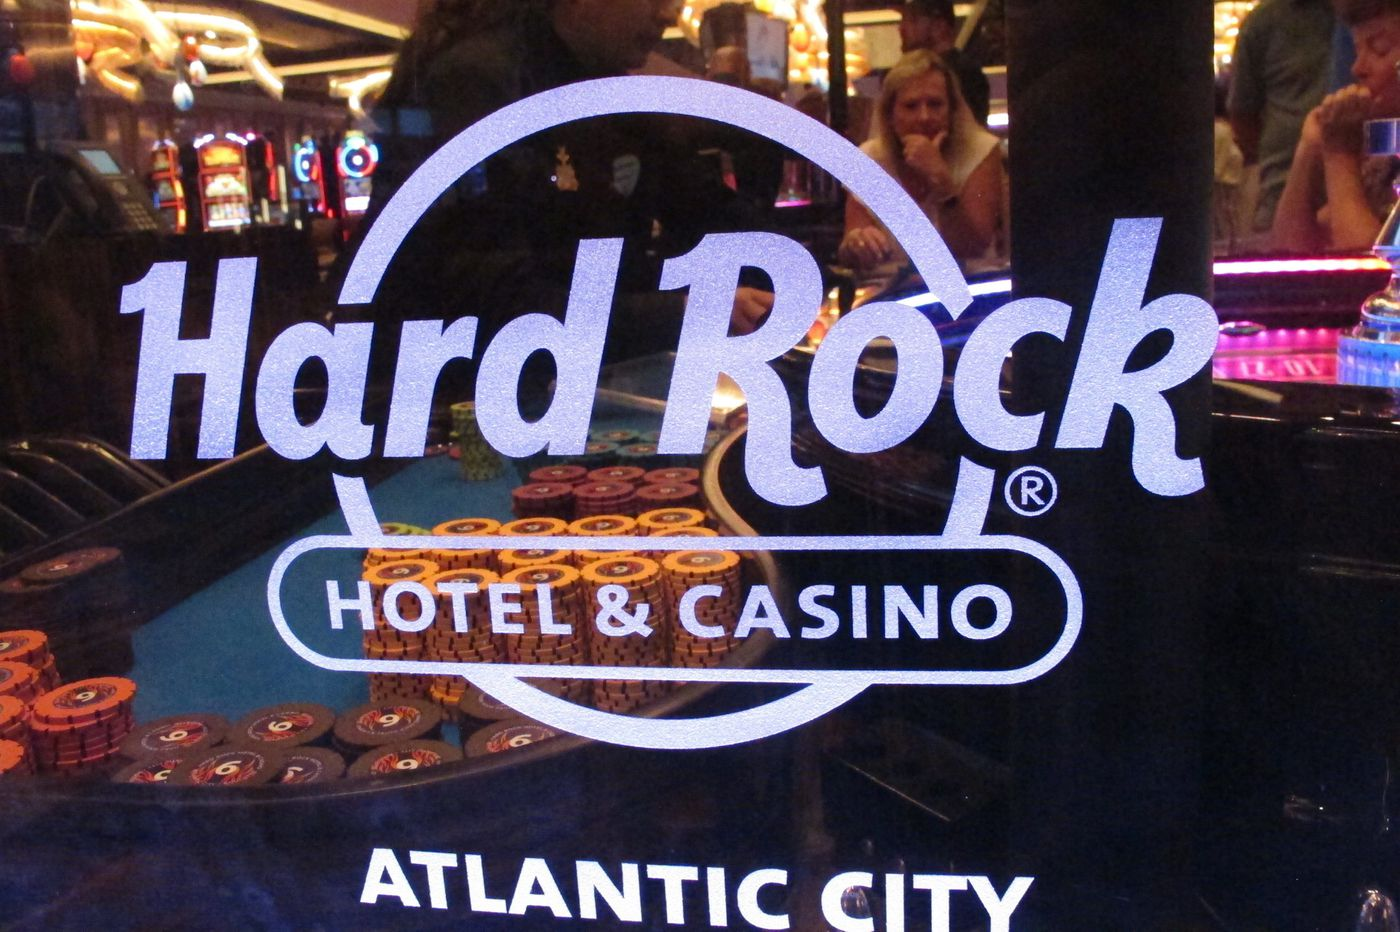 Hard Rock casino and Bet365 form partnership to be N.J.'s 5th sports-betting site